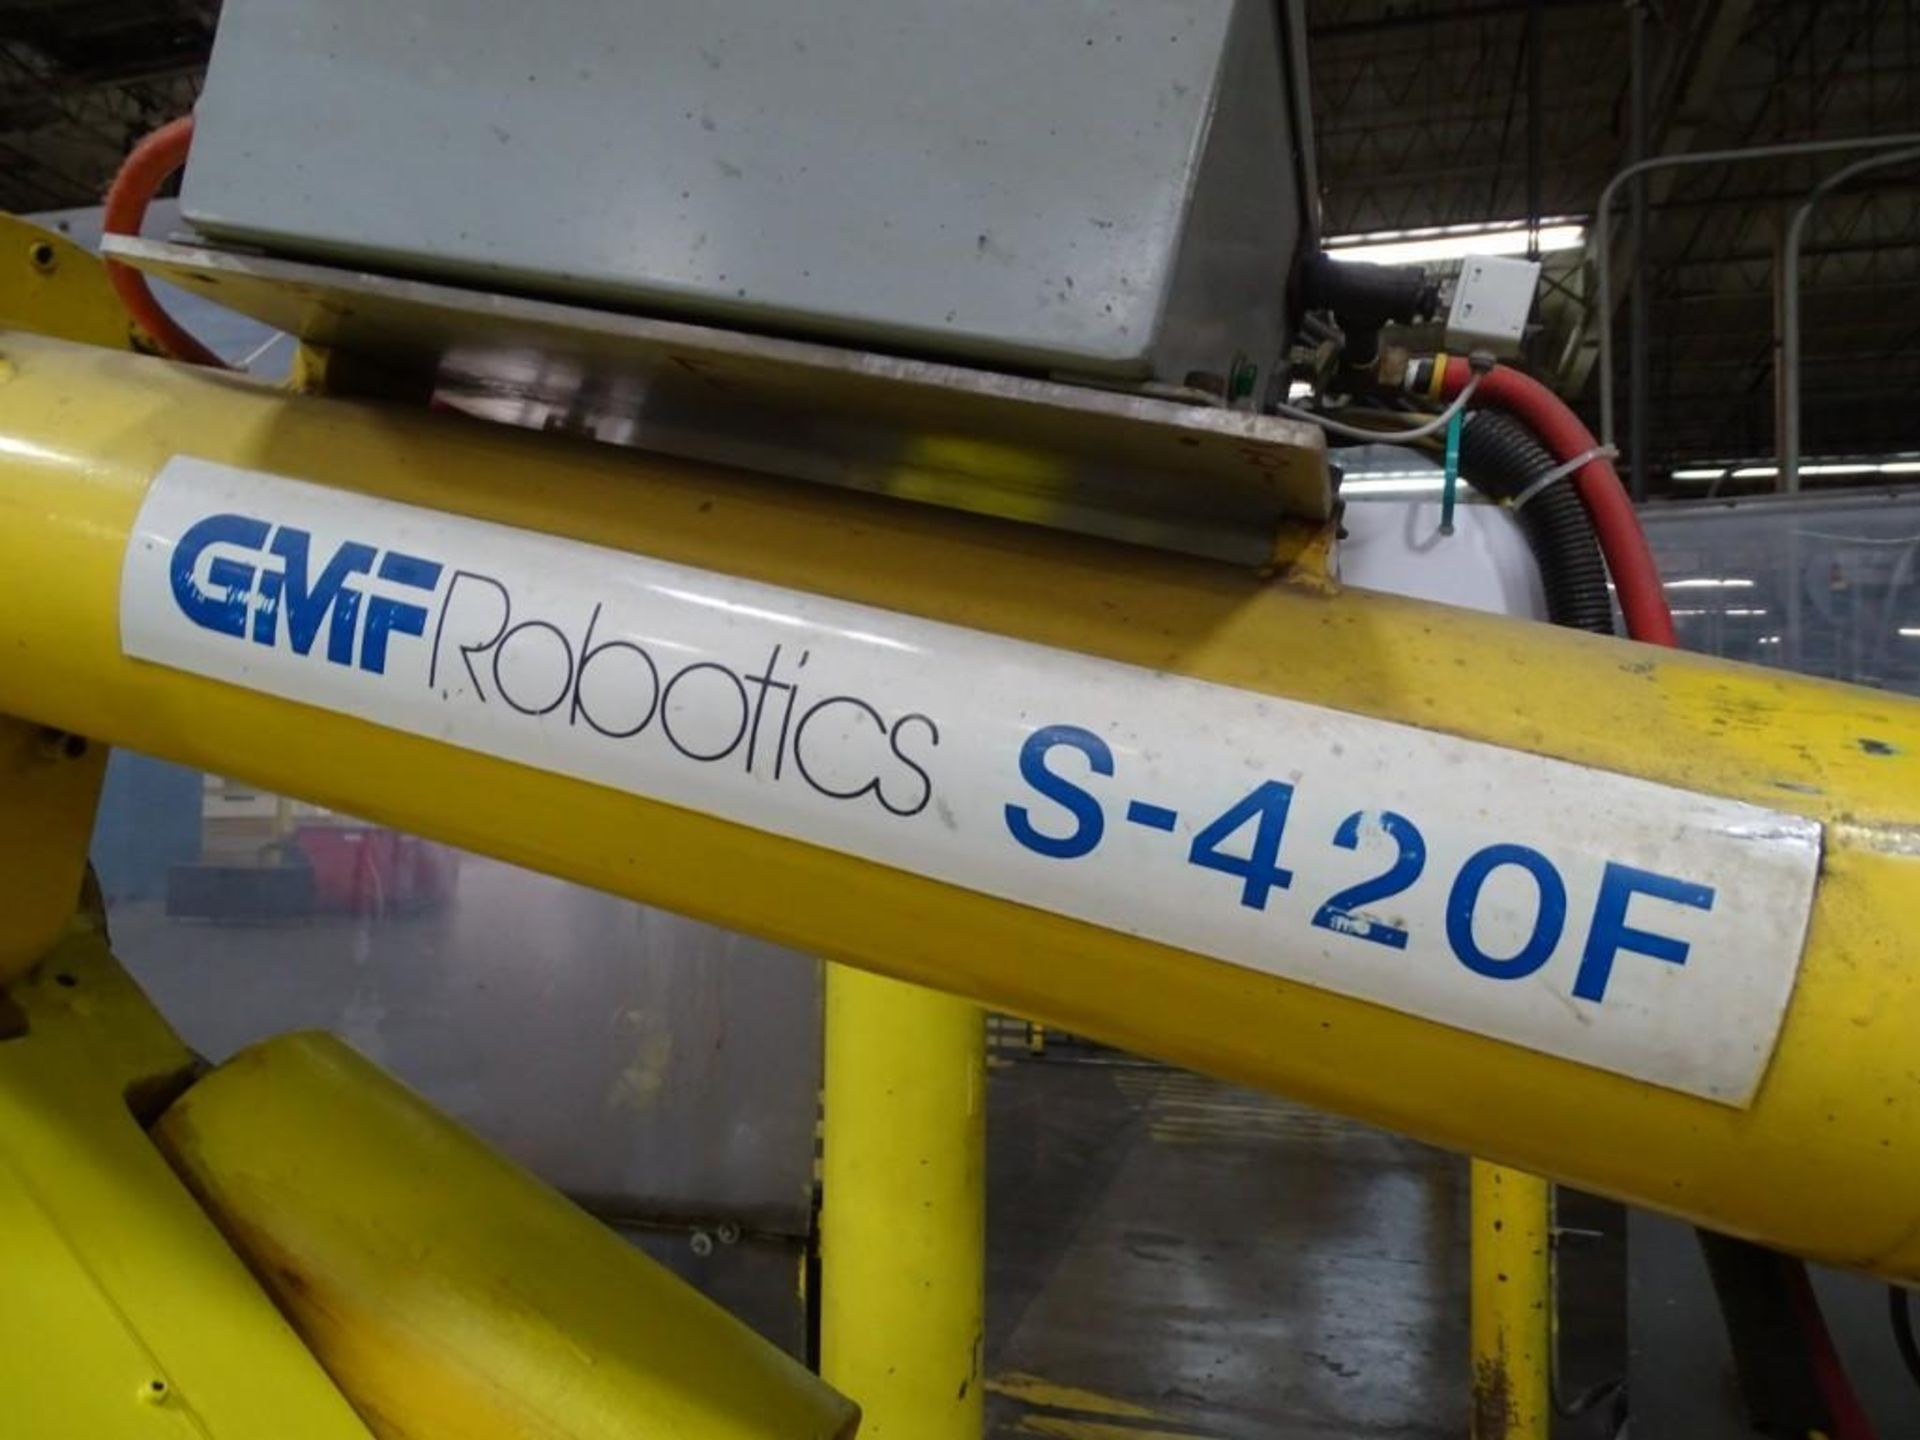 Fanuc S-420F Robotic Arm with Teach Pendant and Controls - Image 4 of 8